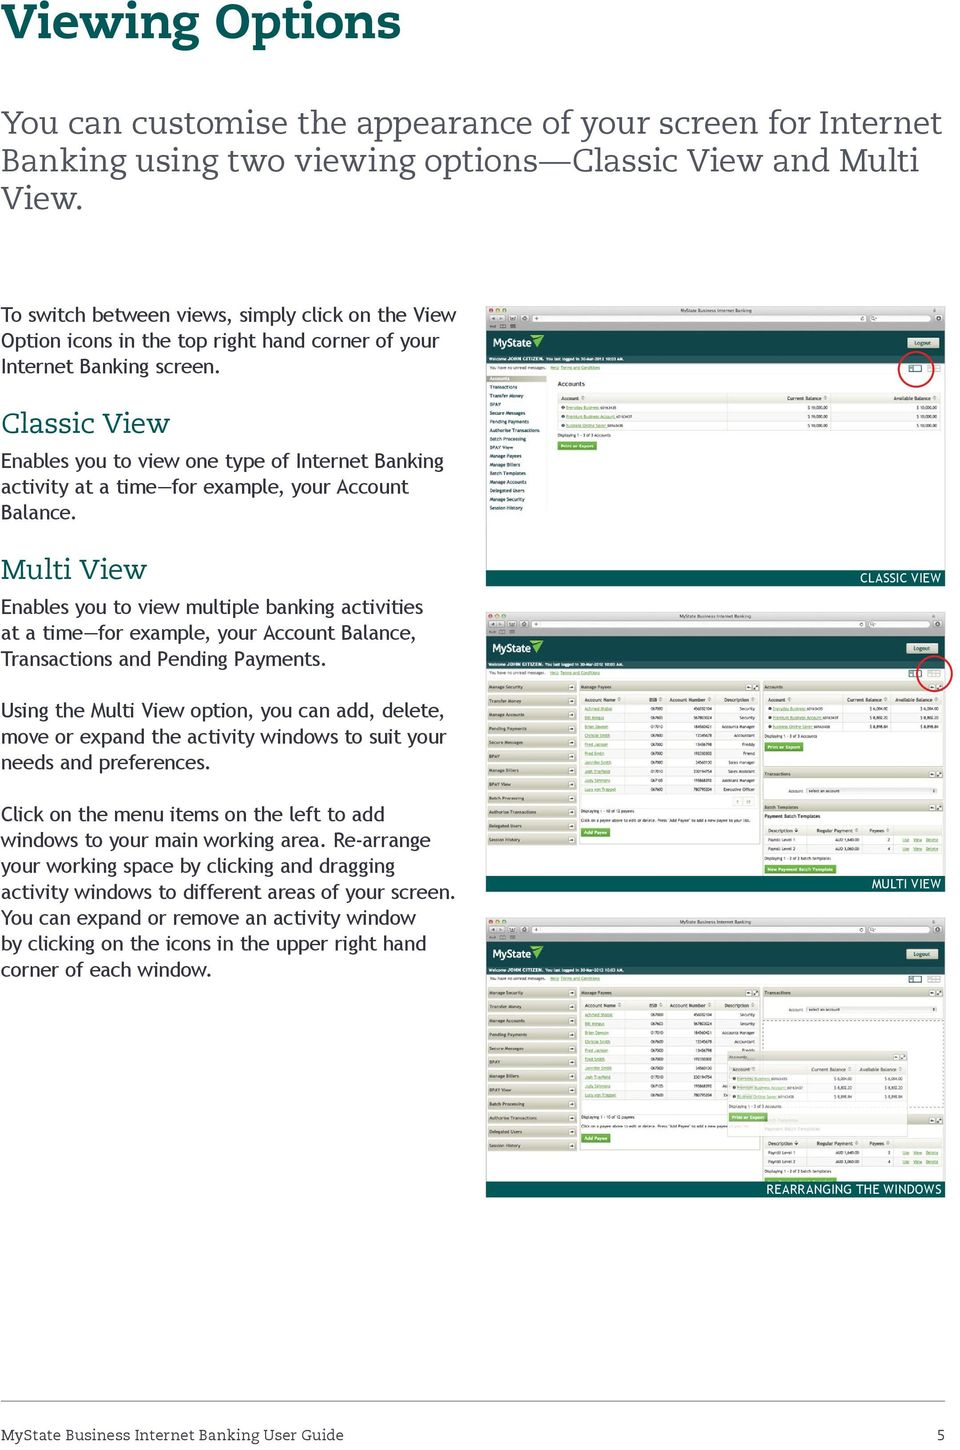 Classic View Enables you to view one type of Internet Banking activity at a time for example, your Account Balance.